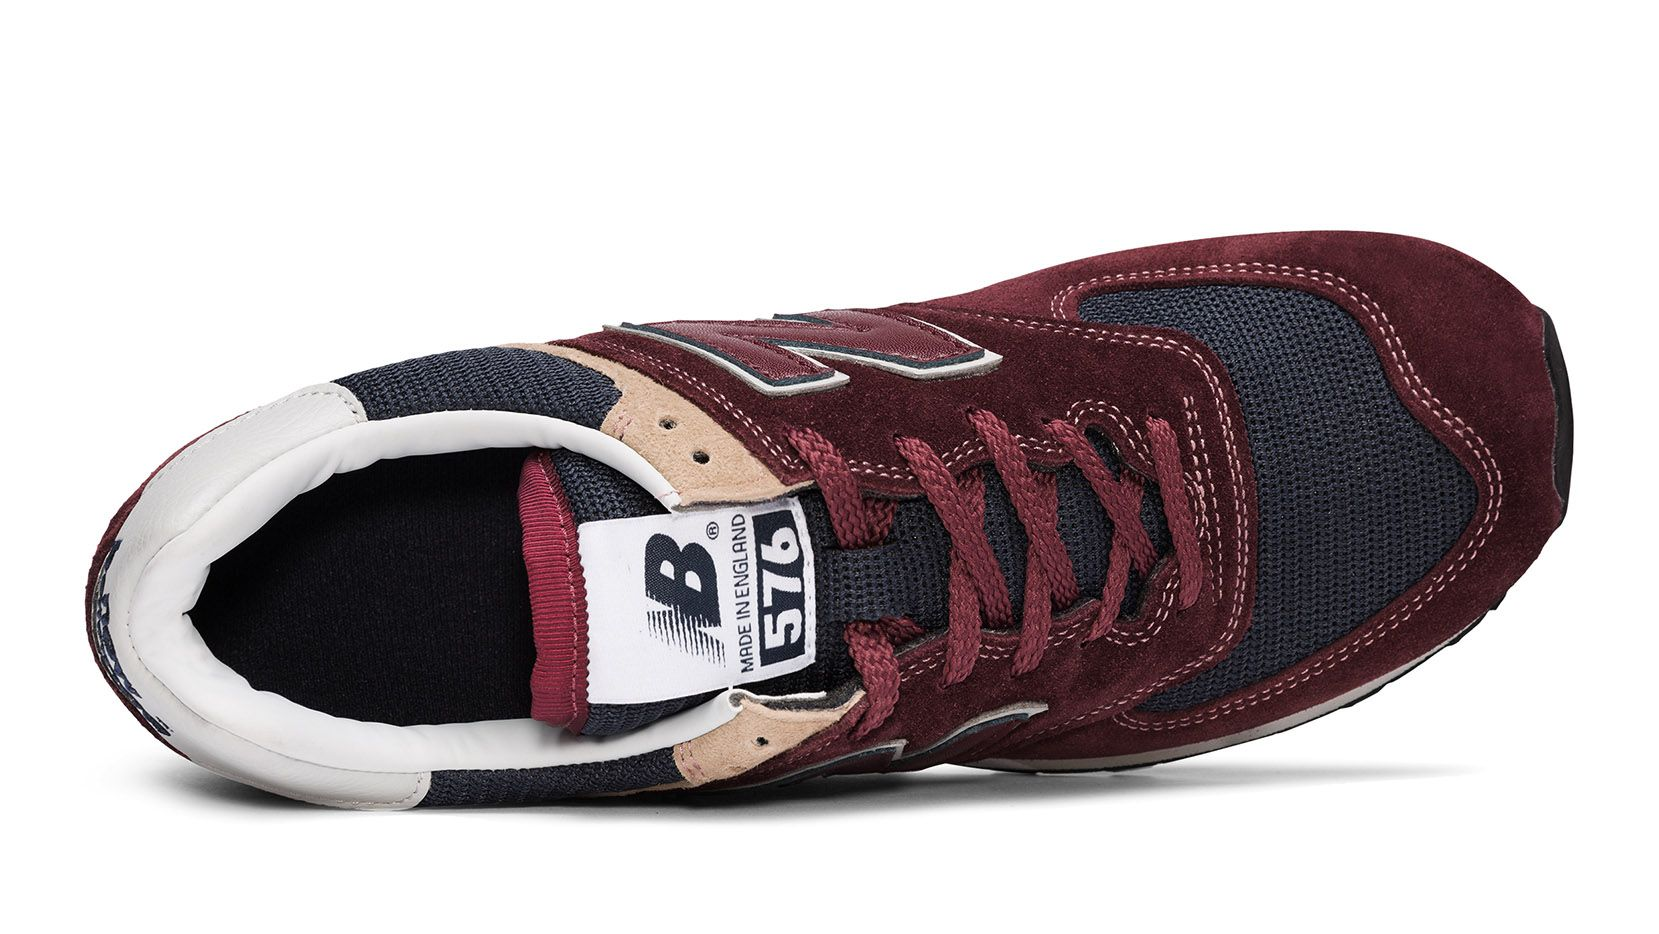 New Balance 576 Made in UK 30th Anniversary